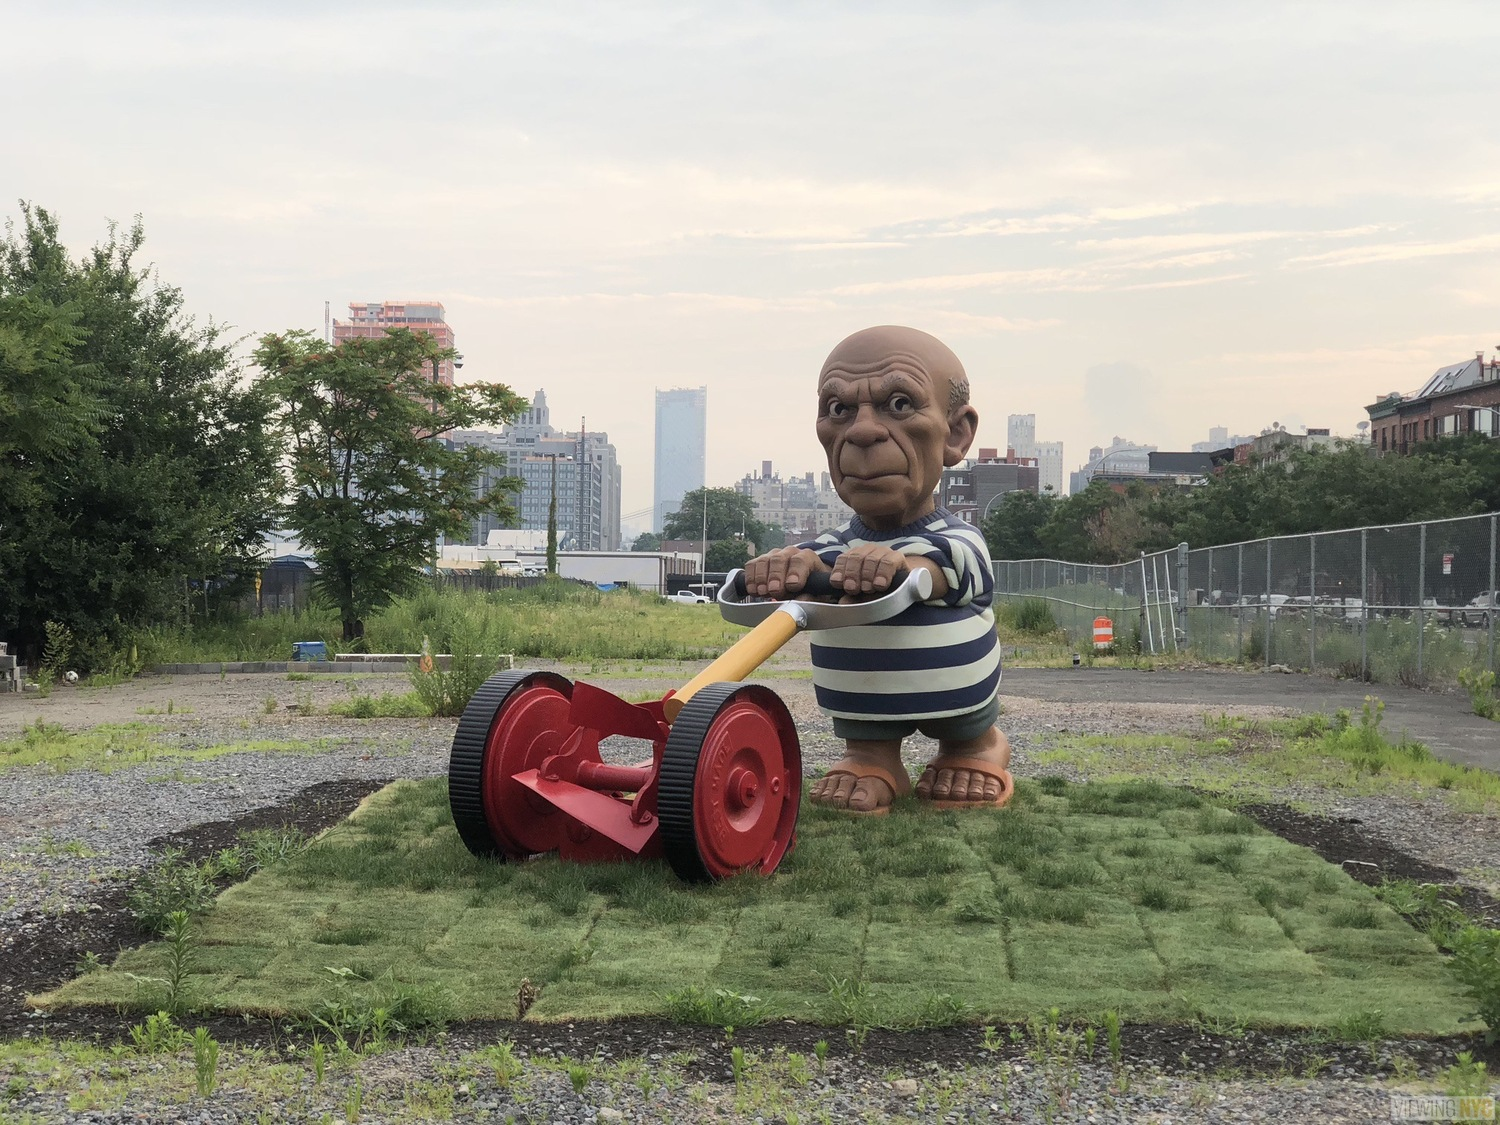 The Spanish Gardener, Elliot Arkin, Brooklyn, NY, 2018